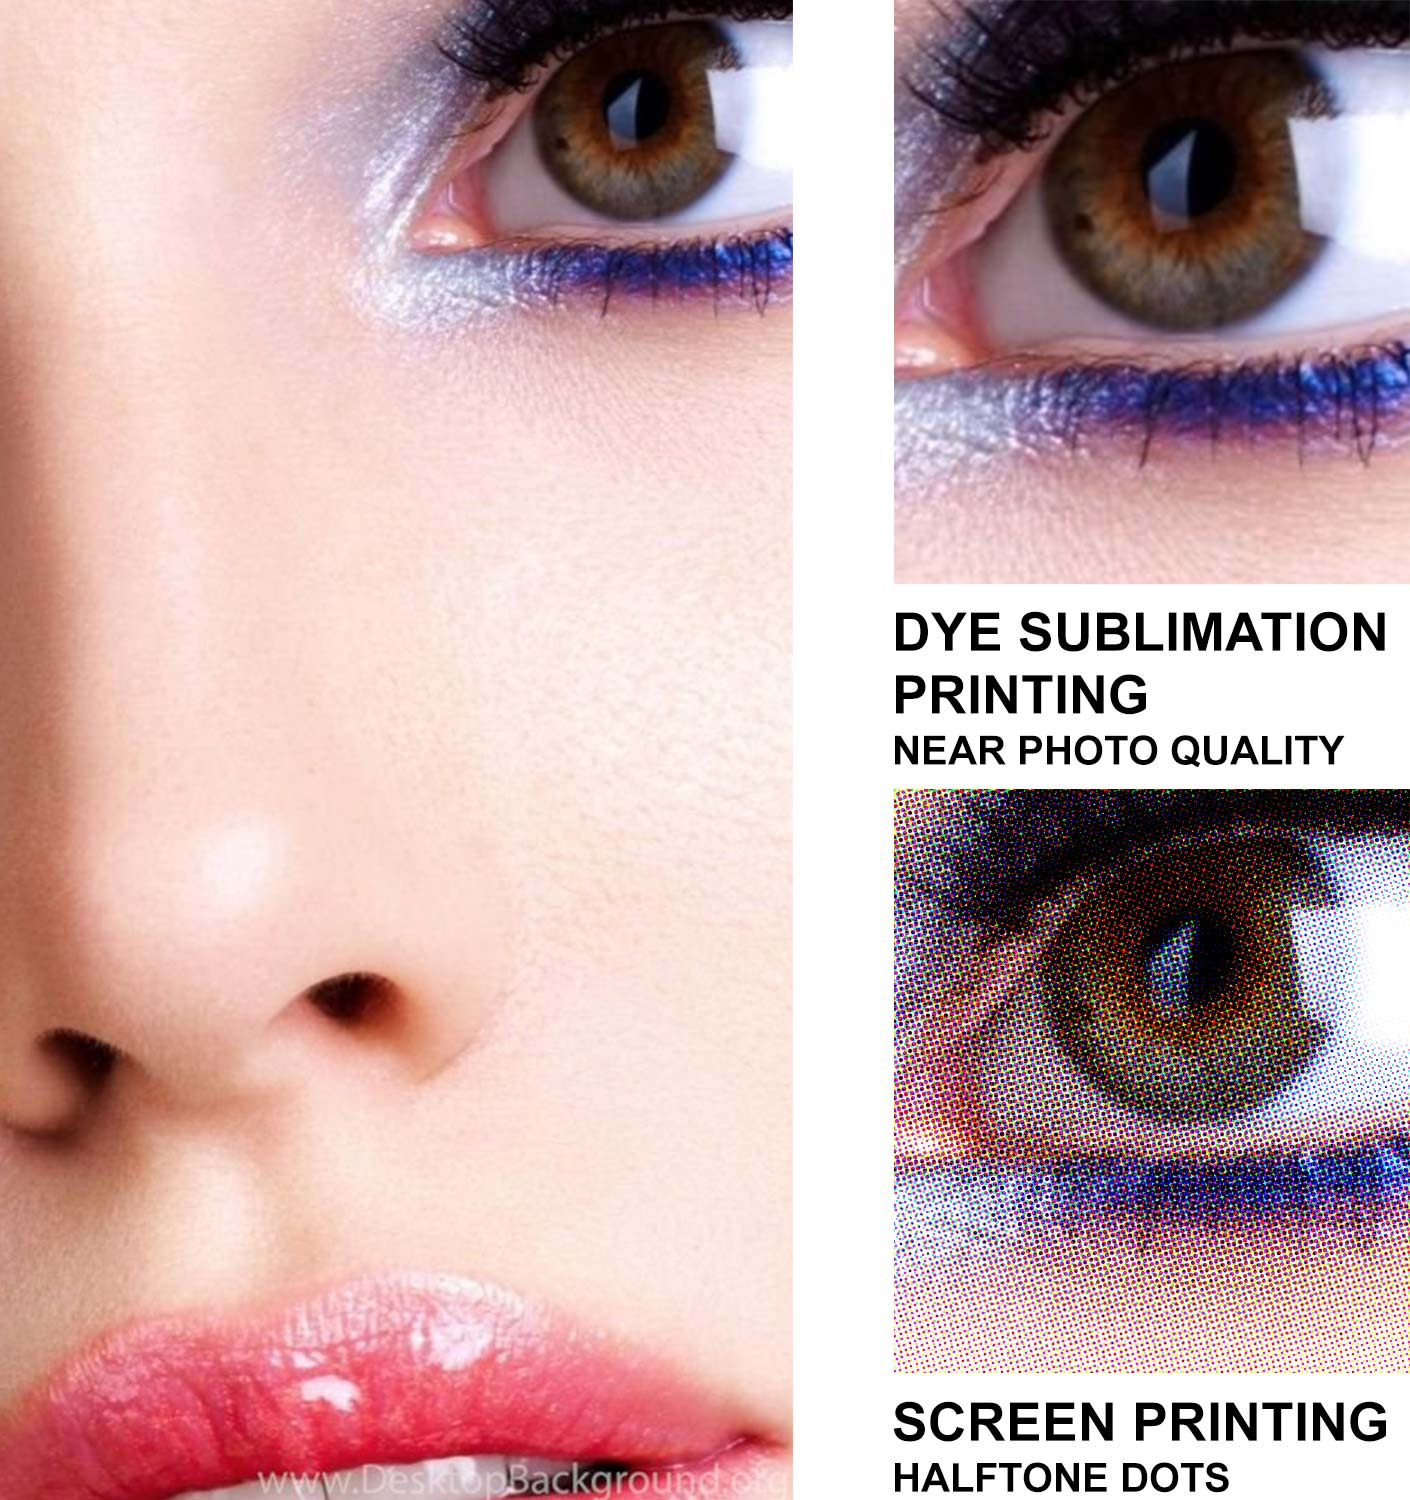 ye Sublimation Printing is near photo quality - versus Screen Printing with halftone dots